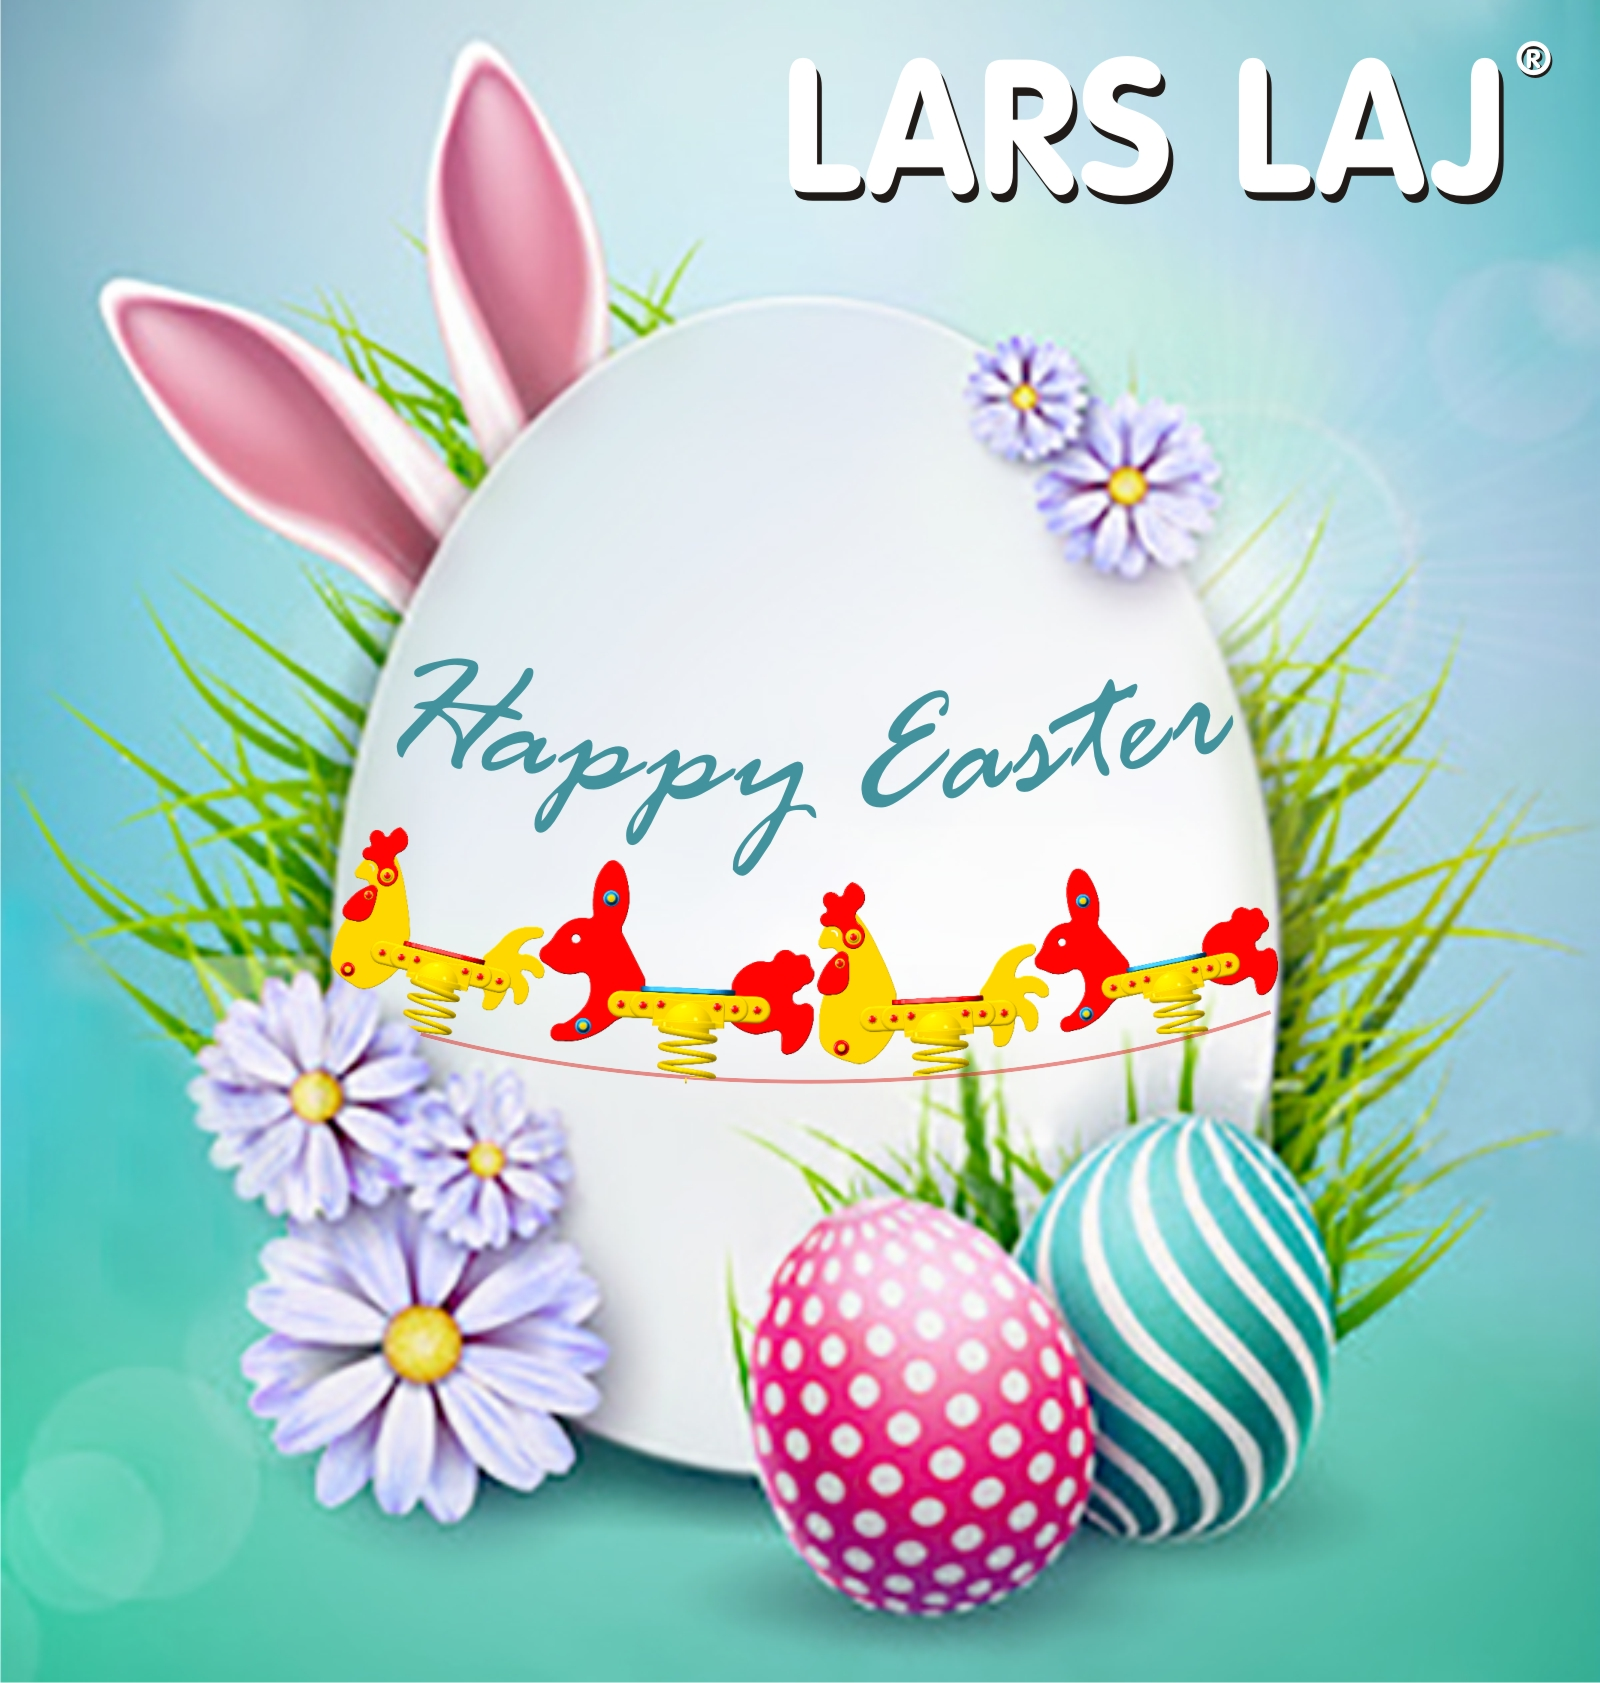 Lars Laj wishes you Happy Easter